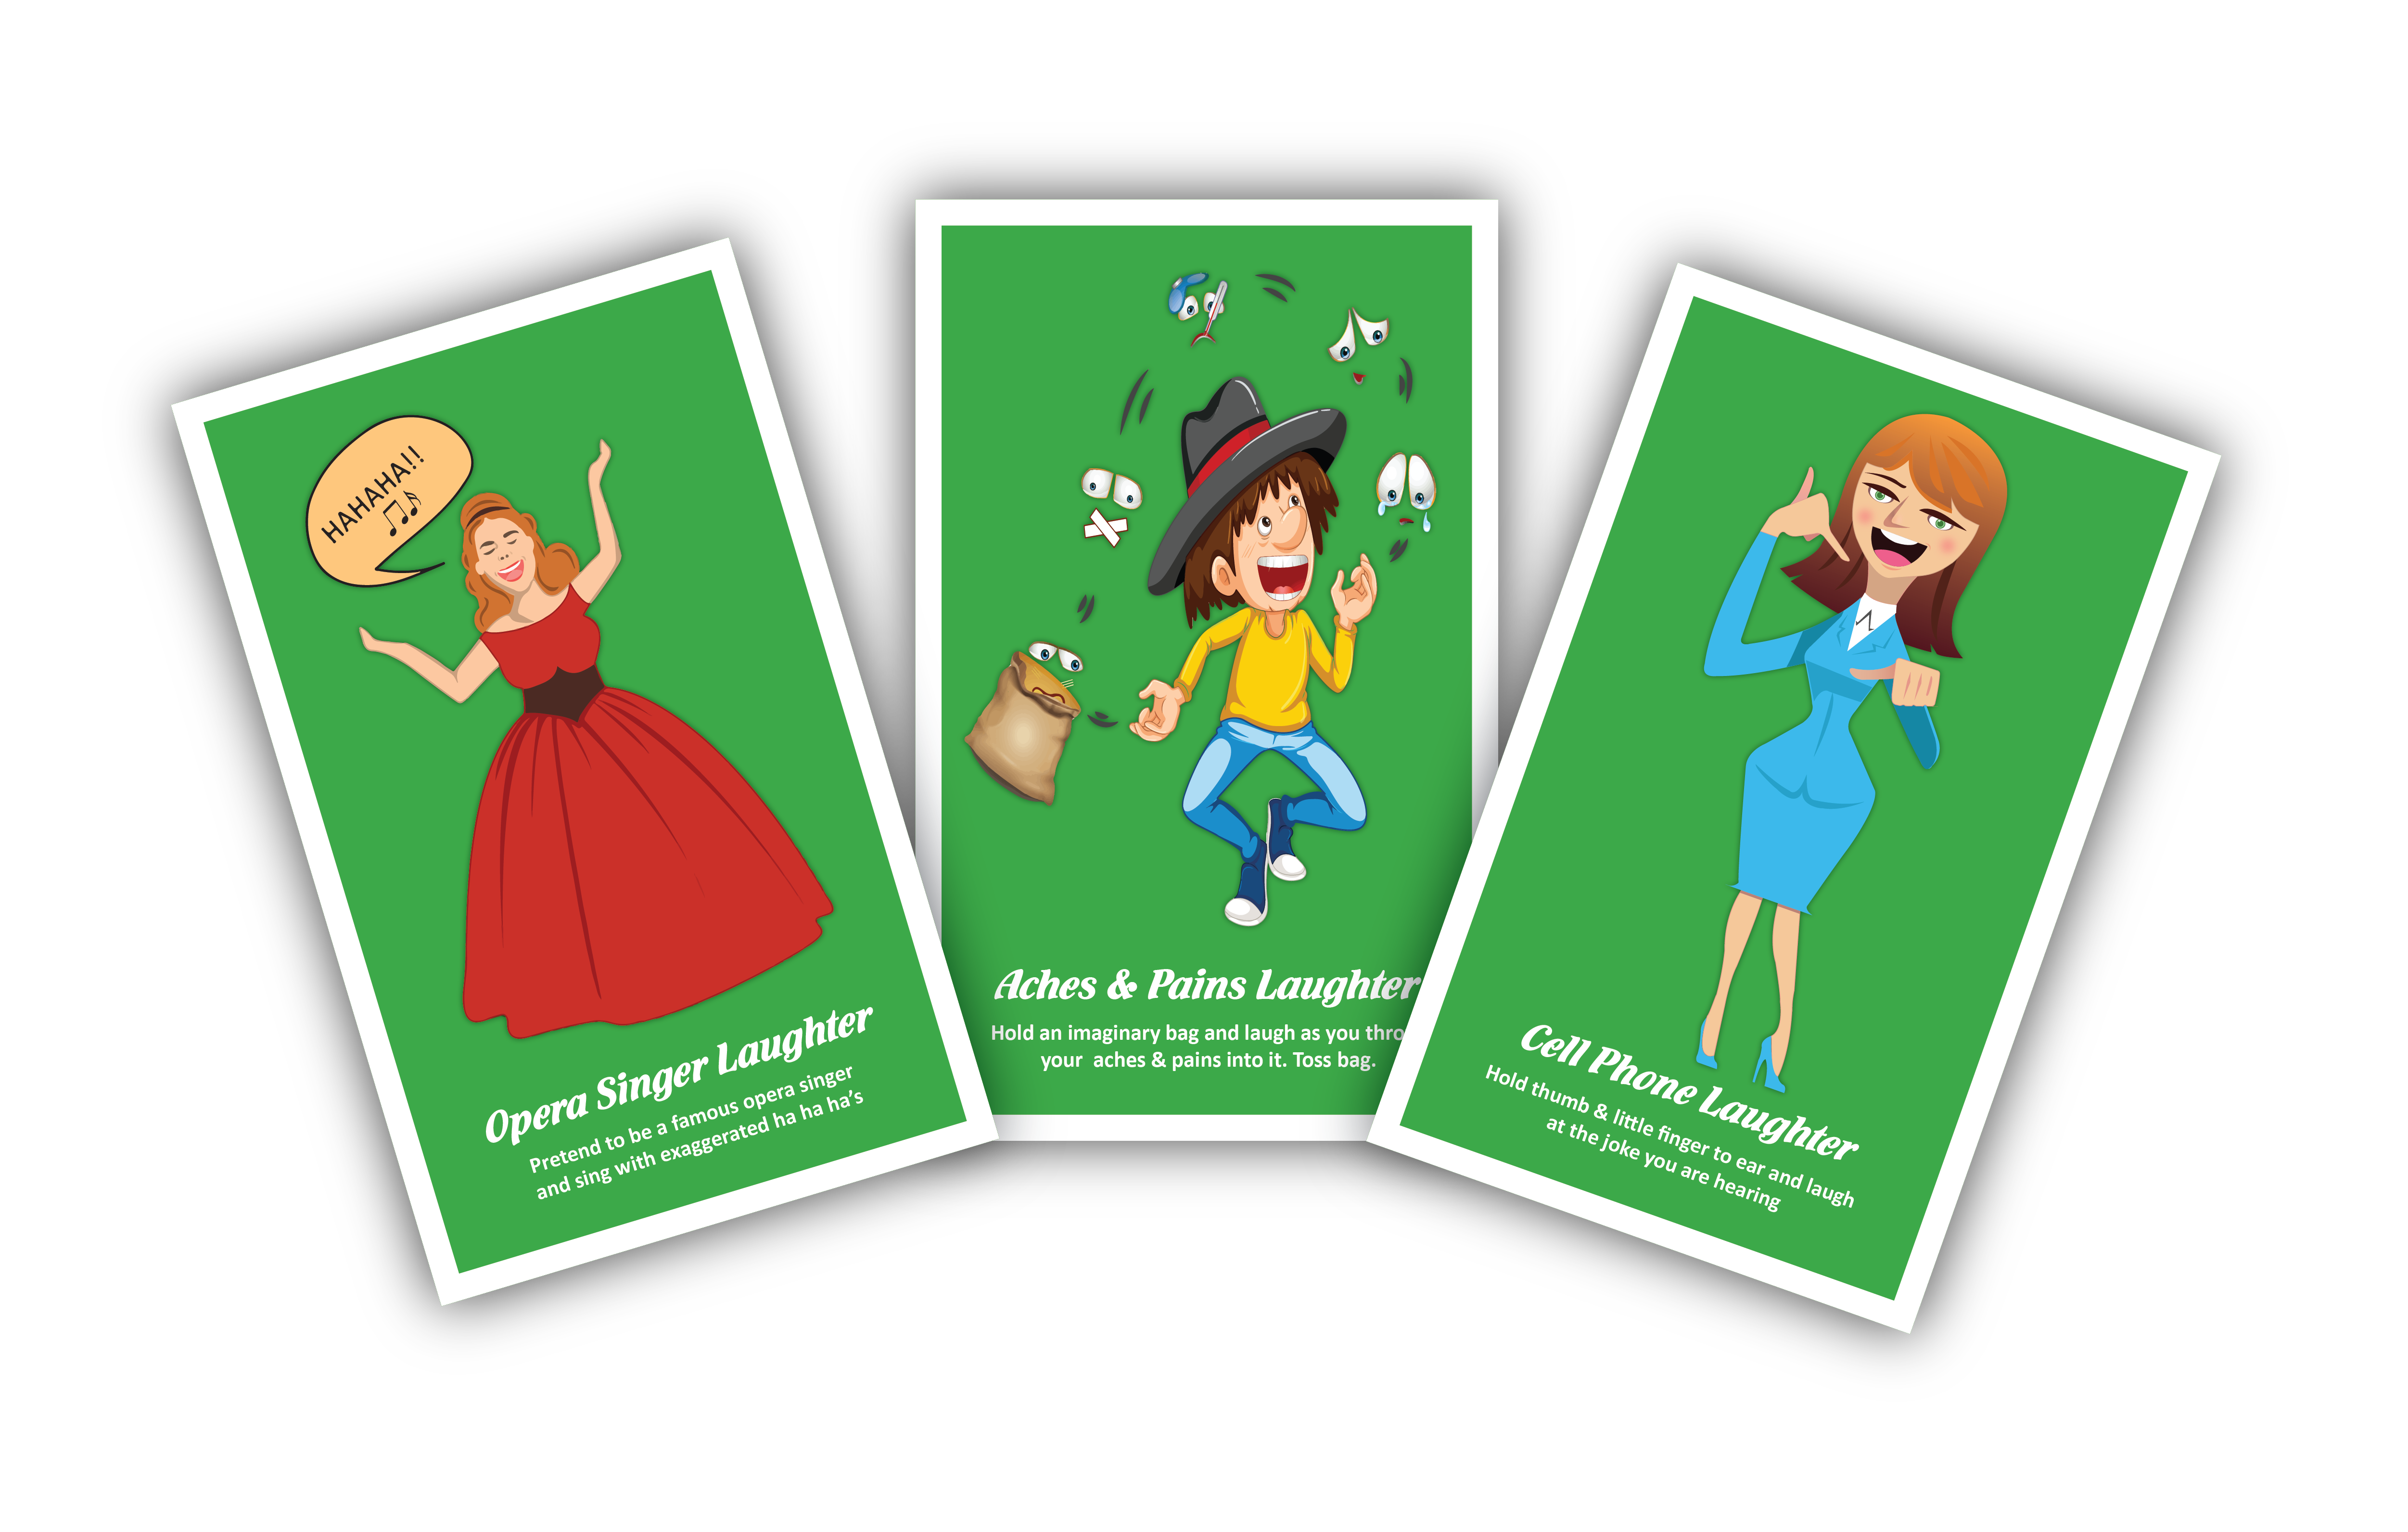 Exercise Cards From The Laughter Yoga Fun 40 Card Deck Add More Laughter To Your Life Also Or With Family And Friends La Laughter Yoga Card Workout Laughter